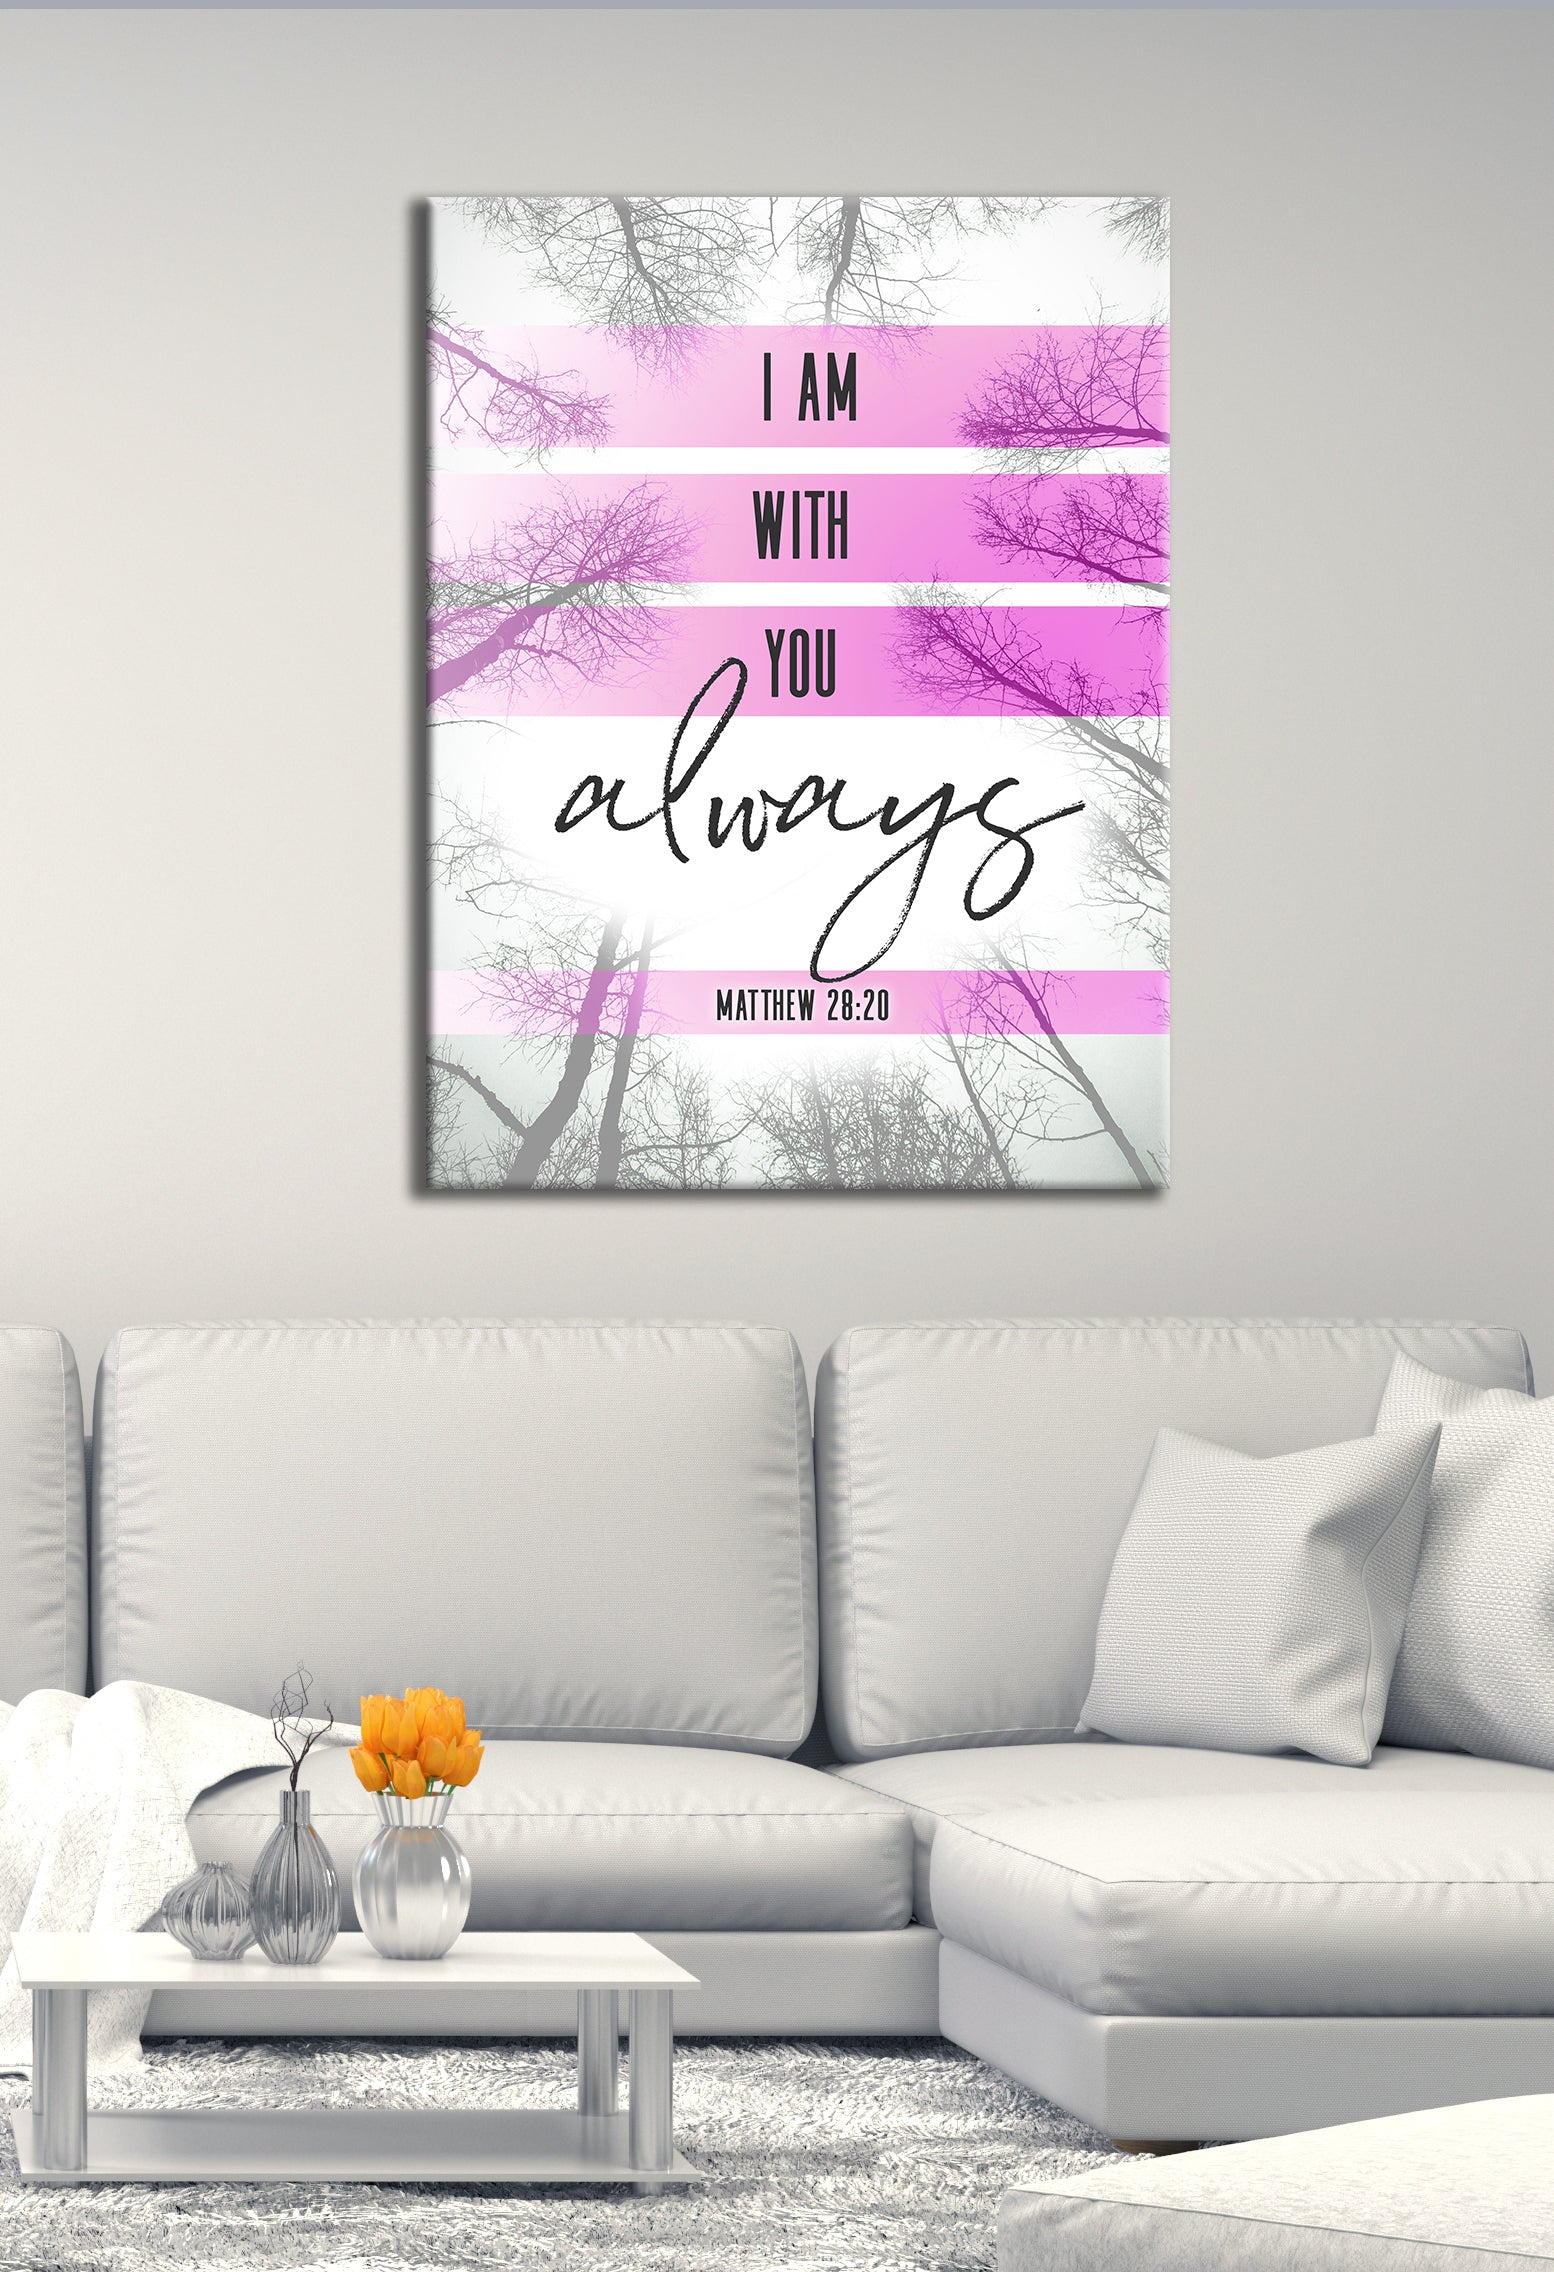 Christian Wall Art: I Am With You Always (Wood Frame Ready To Hang)